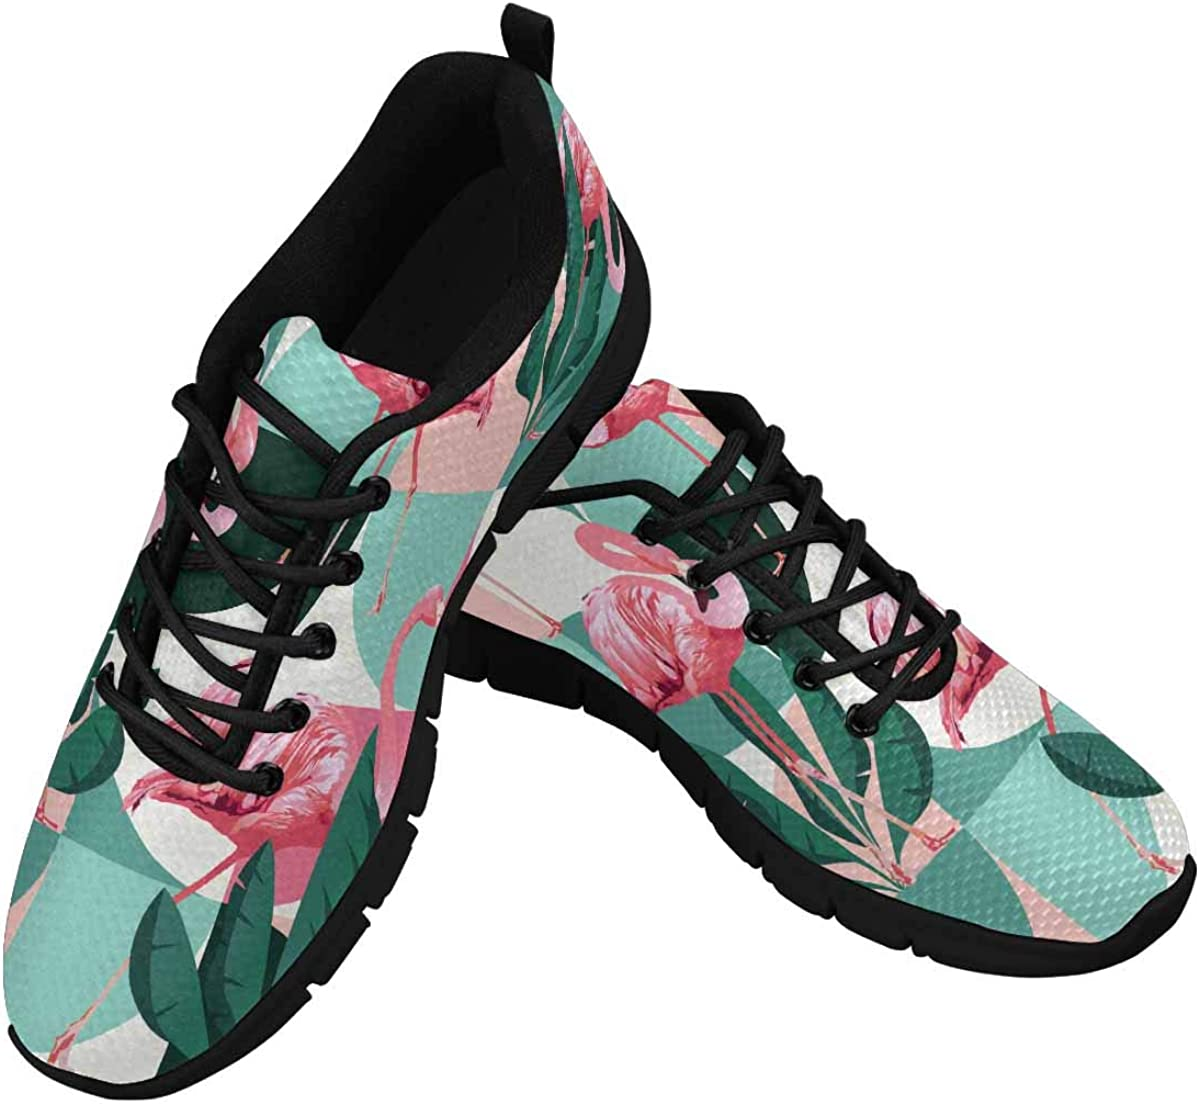 INTERESTPRINT Exotic Banana Leaves and Pink Flamingos Women's Athletic Mesh Breathable Casual Sneaker